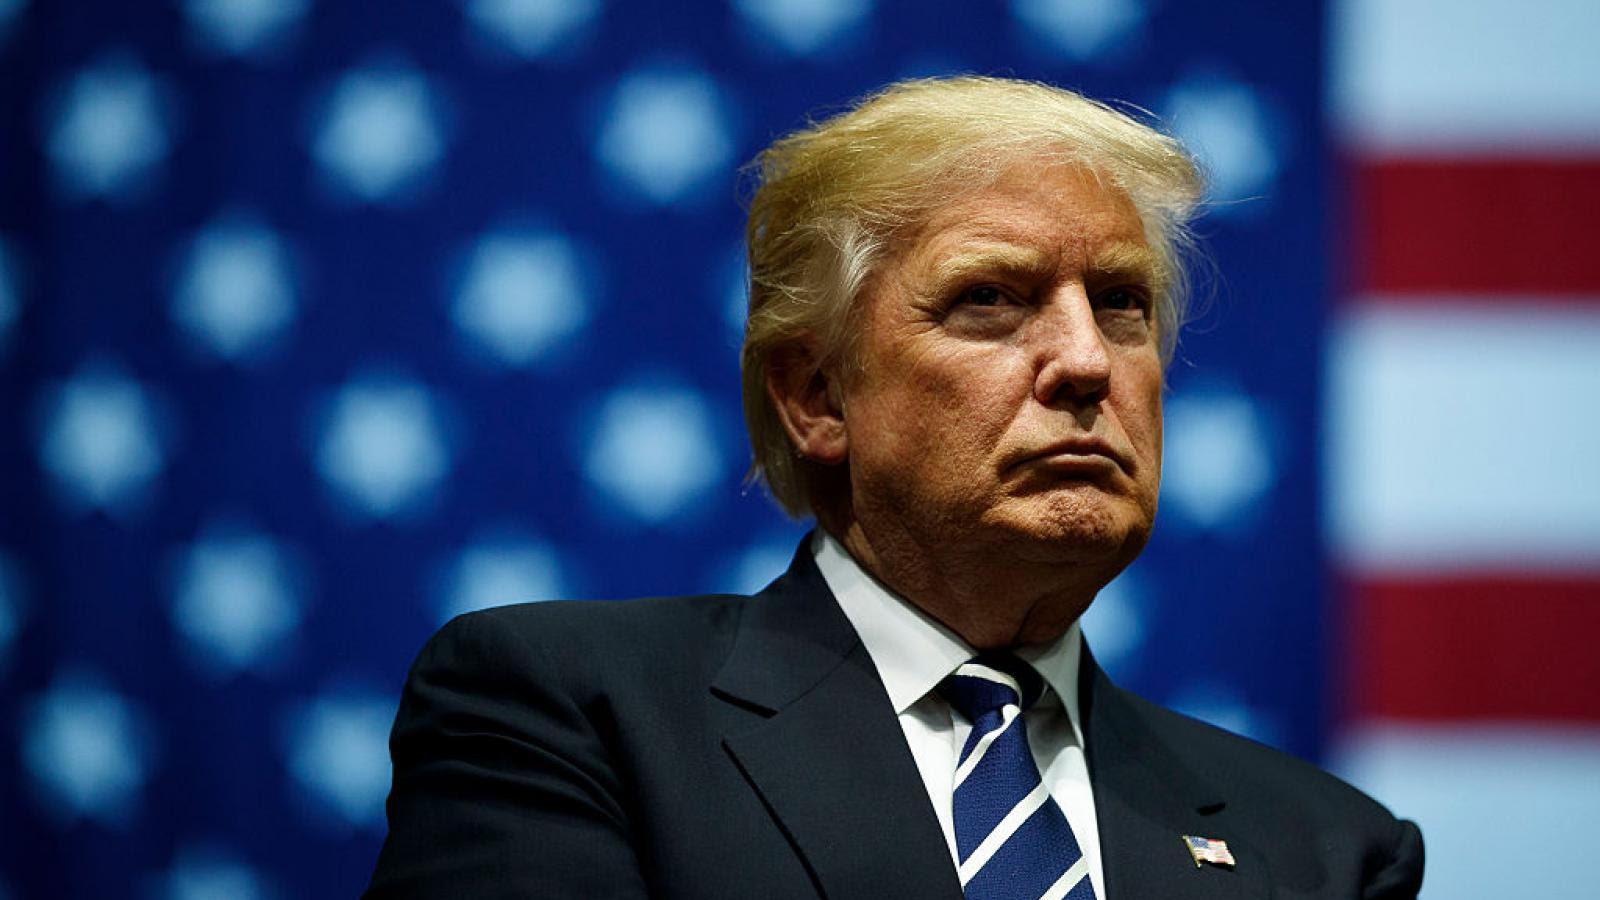 BREAKING: President Trump speaks at CPAC, promises to win historic struggle for America  GettyImages-628833102%20%281%29